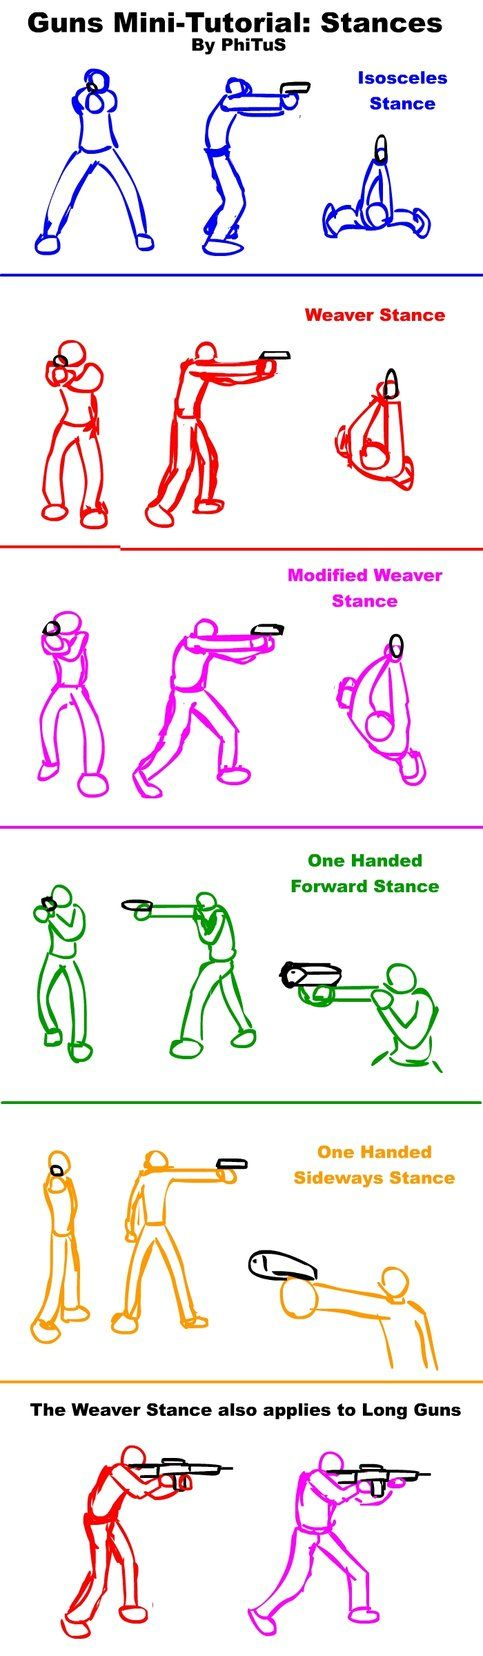 Guns Mini-Tutorial: Stances by ~PhiTuS on deviantART